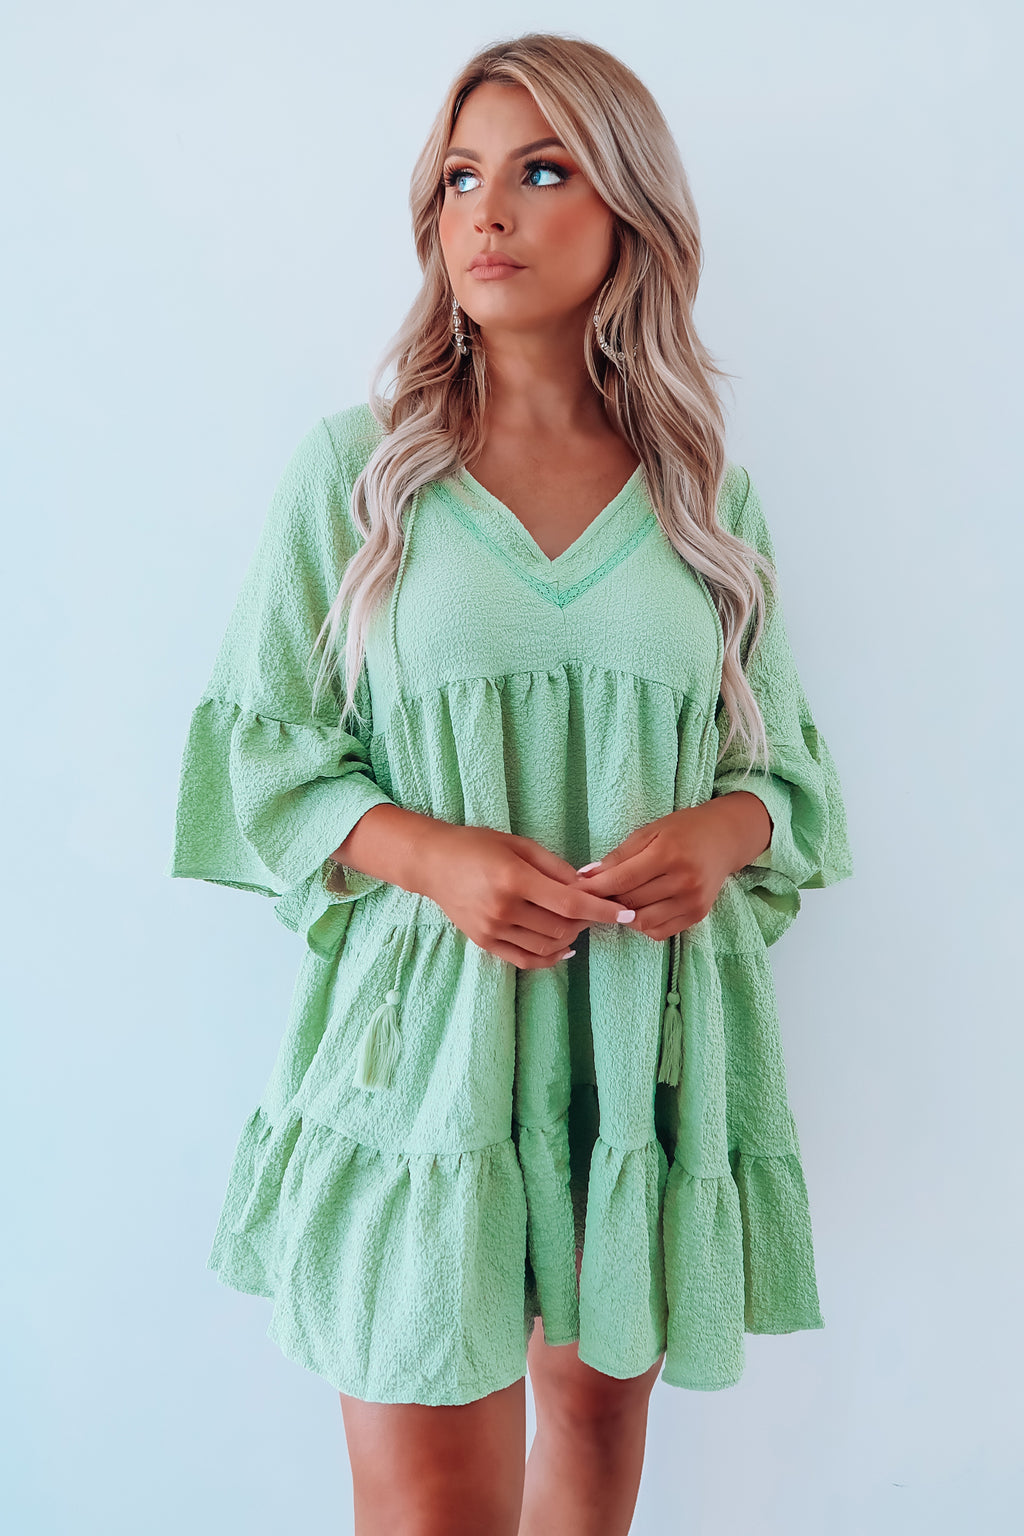 Just Getting Started Dress: Sage